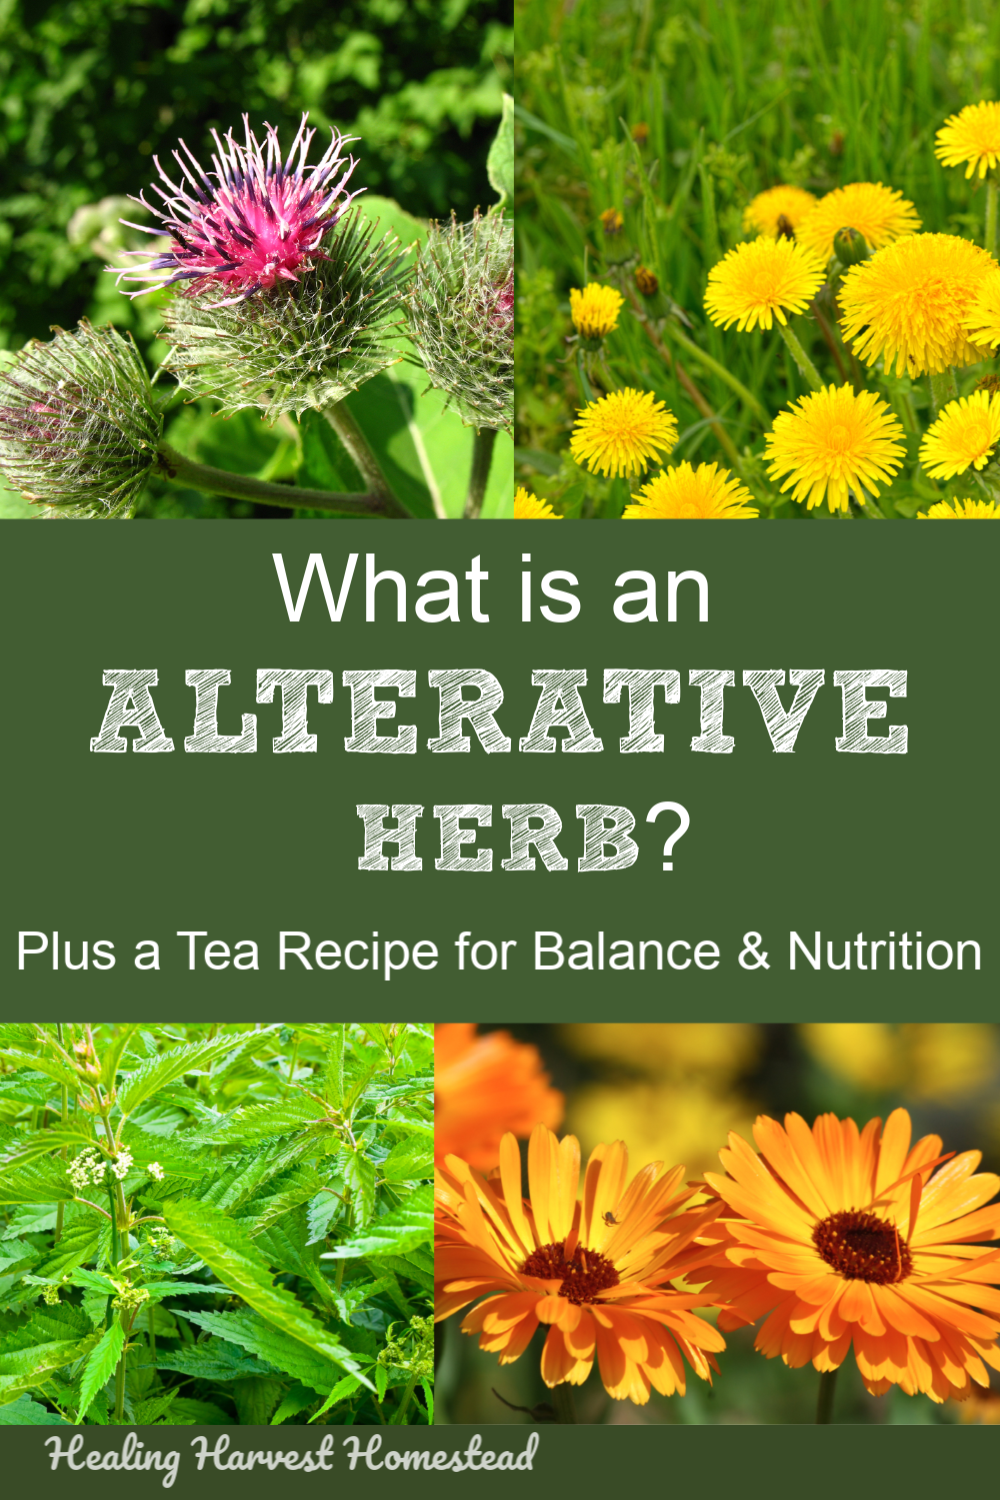 Find out what an alterative herb is, why you need to add these to your daily diet, plus an herbal tea recipe for balance, nutrition, and metabolic support. Be heatlhy, and use herbs! #herbaltea #useherbs #alterativeherbs #homeremedy #plantmedicine #howtomake #nutrition #tea #metabolism #health #healingharvesthomestead